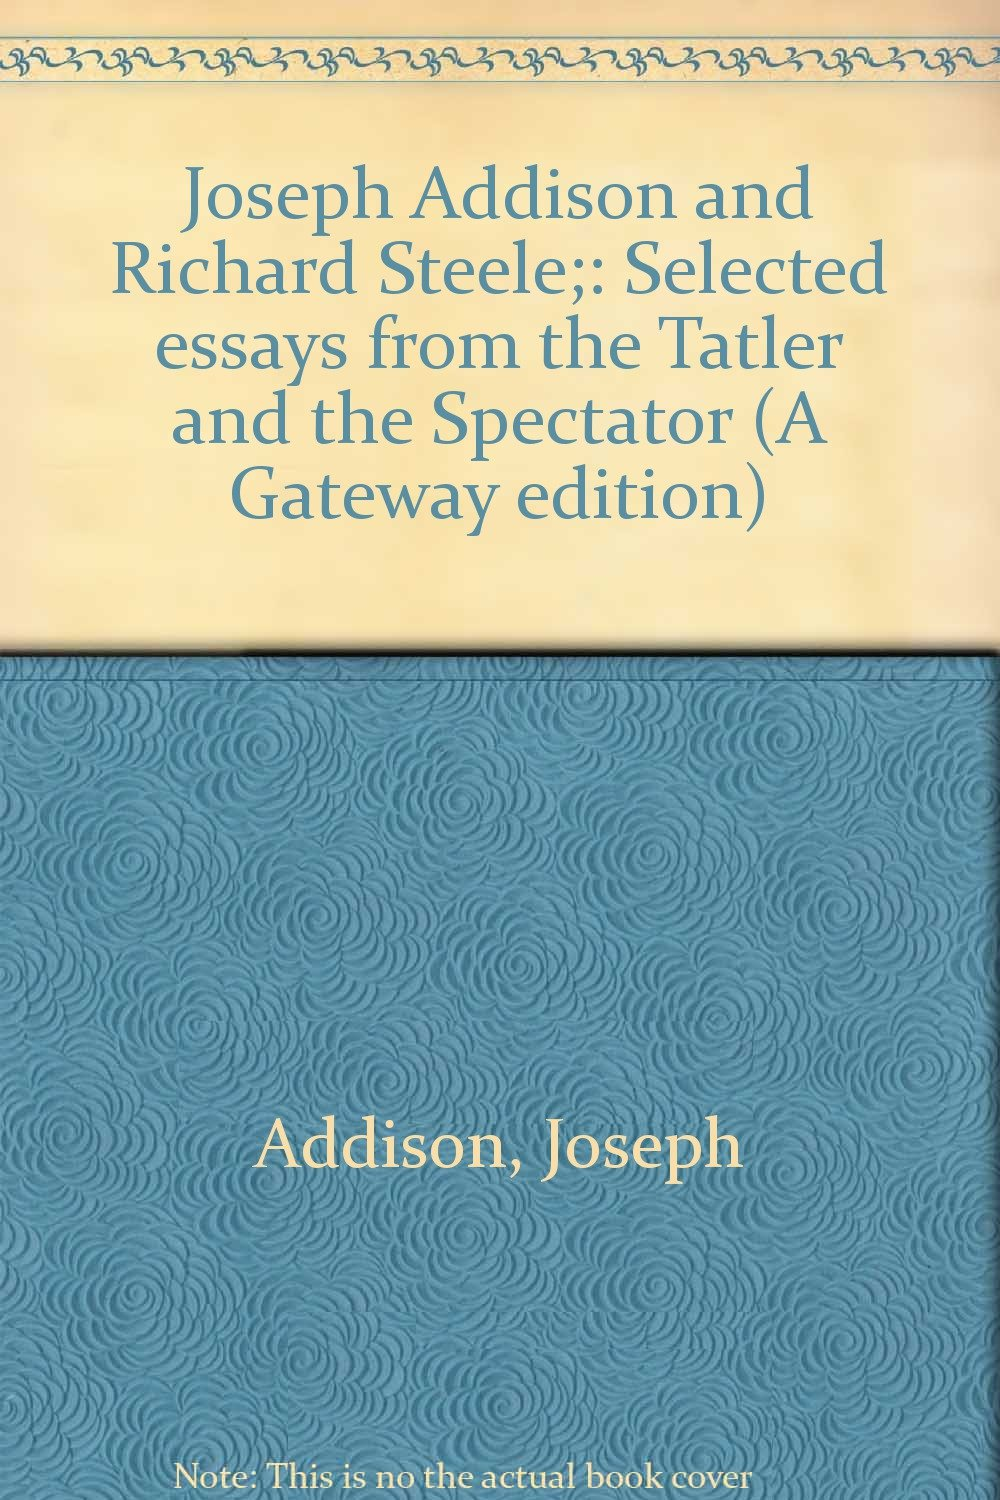 joseph addison and richard steele selected essays from the joseph addison and richard steele selected essays from the tatler and the spectator a gateway edition joseph addison com books